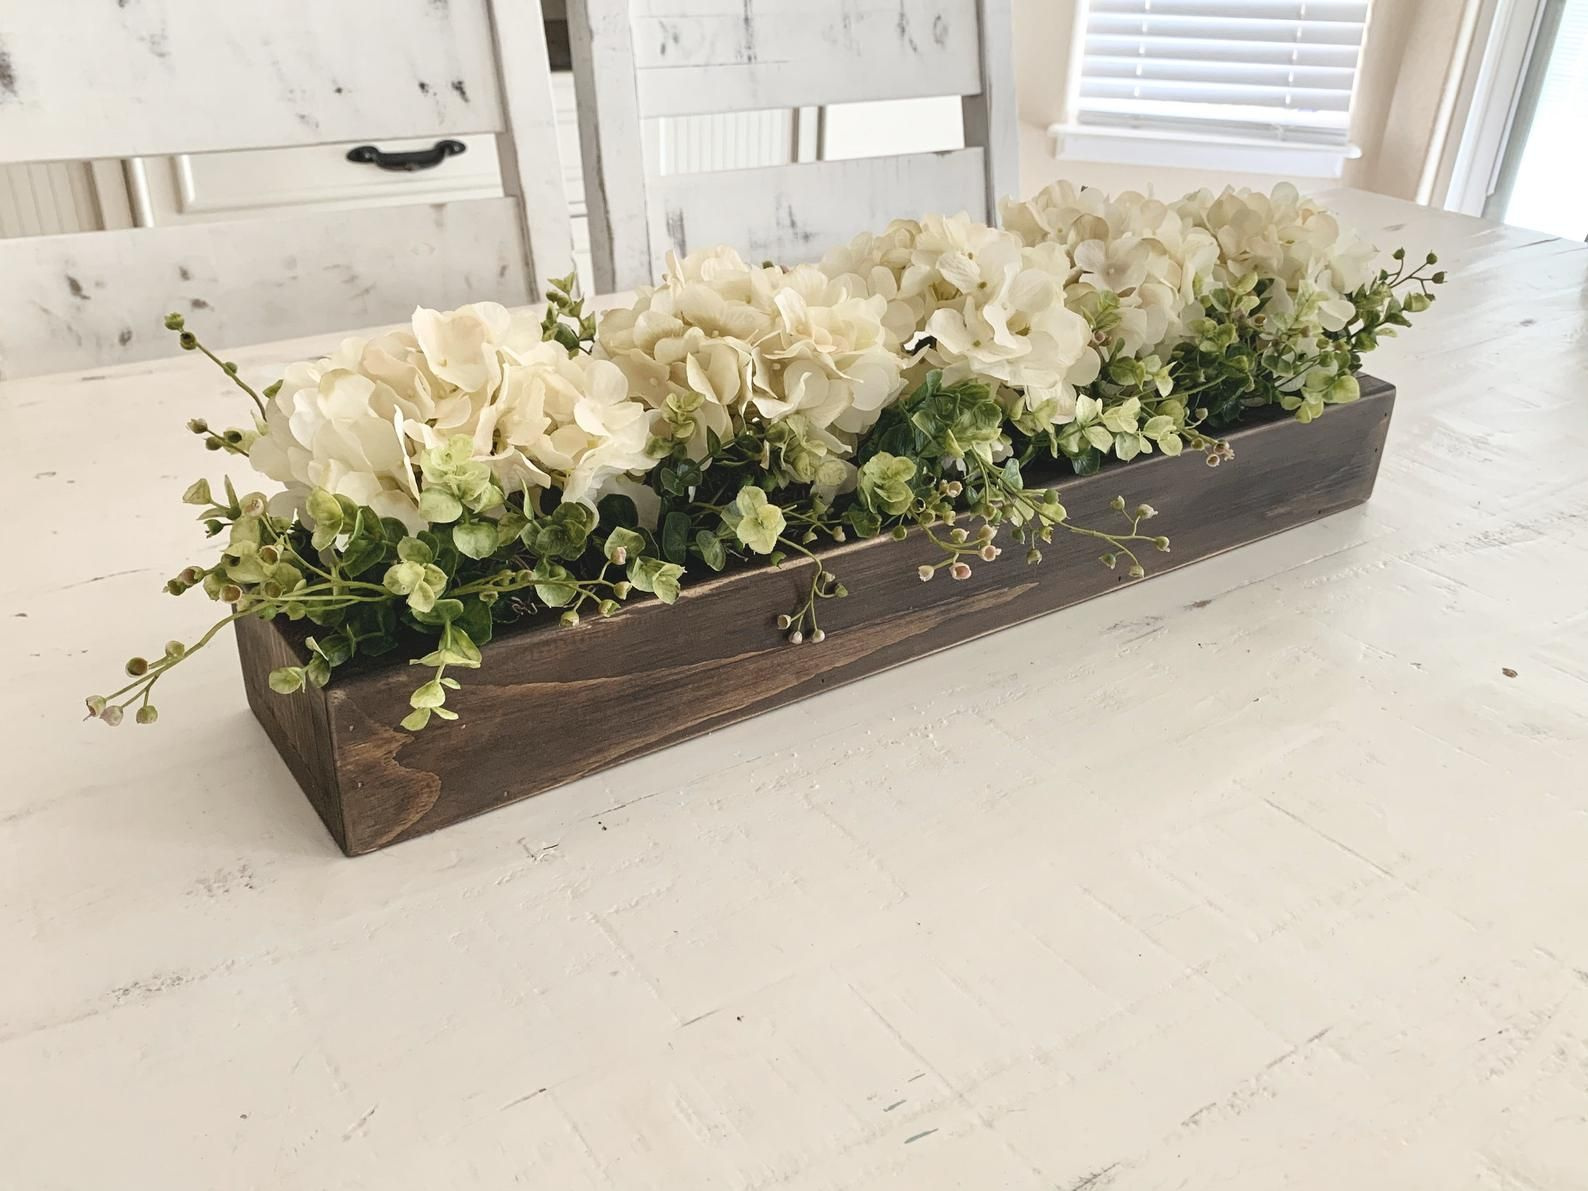 Kitchen Island Centerpiece Dining Room Table Centerpiece Etsy Dining Room Table Centerpieces Farmhouse Table Centerpieces Kitchen Island Centerpiece